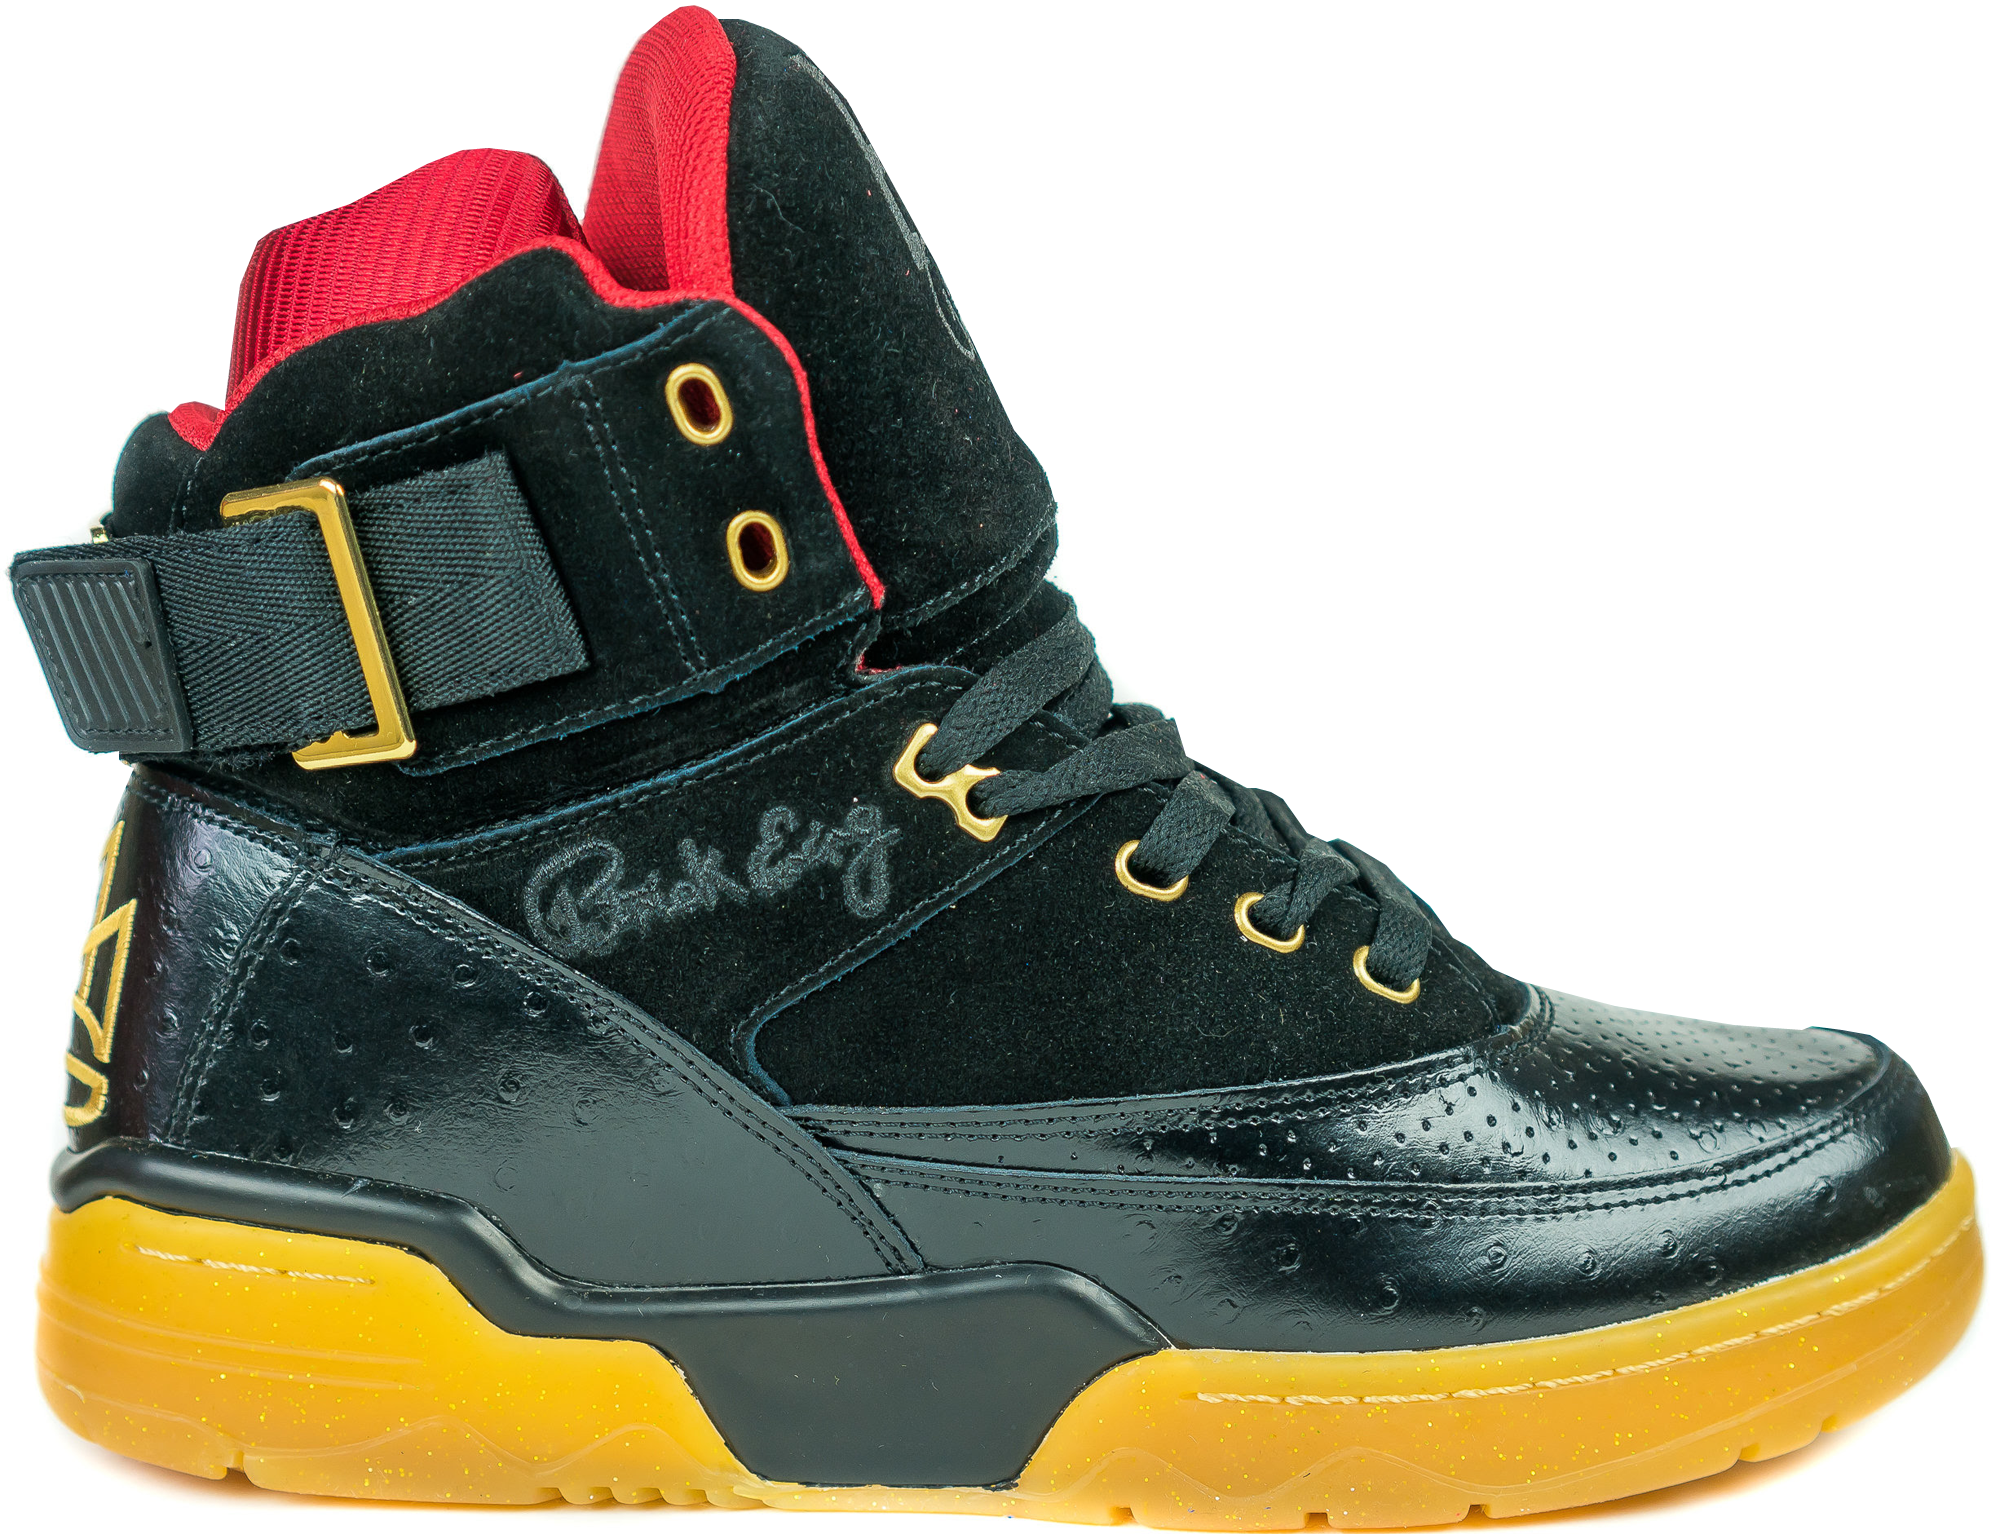 Mens PATRICK EWING 33 HI BLACK GUM MEN'S RETRO COLLECTION RELEASE DATE DECEMBER 18TH 2015 AVAILABLE NOW For Sales Size 41